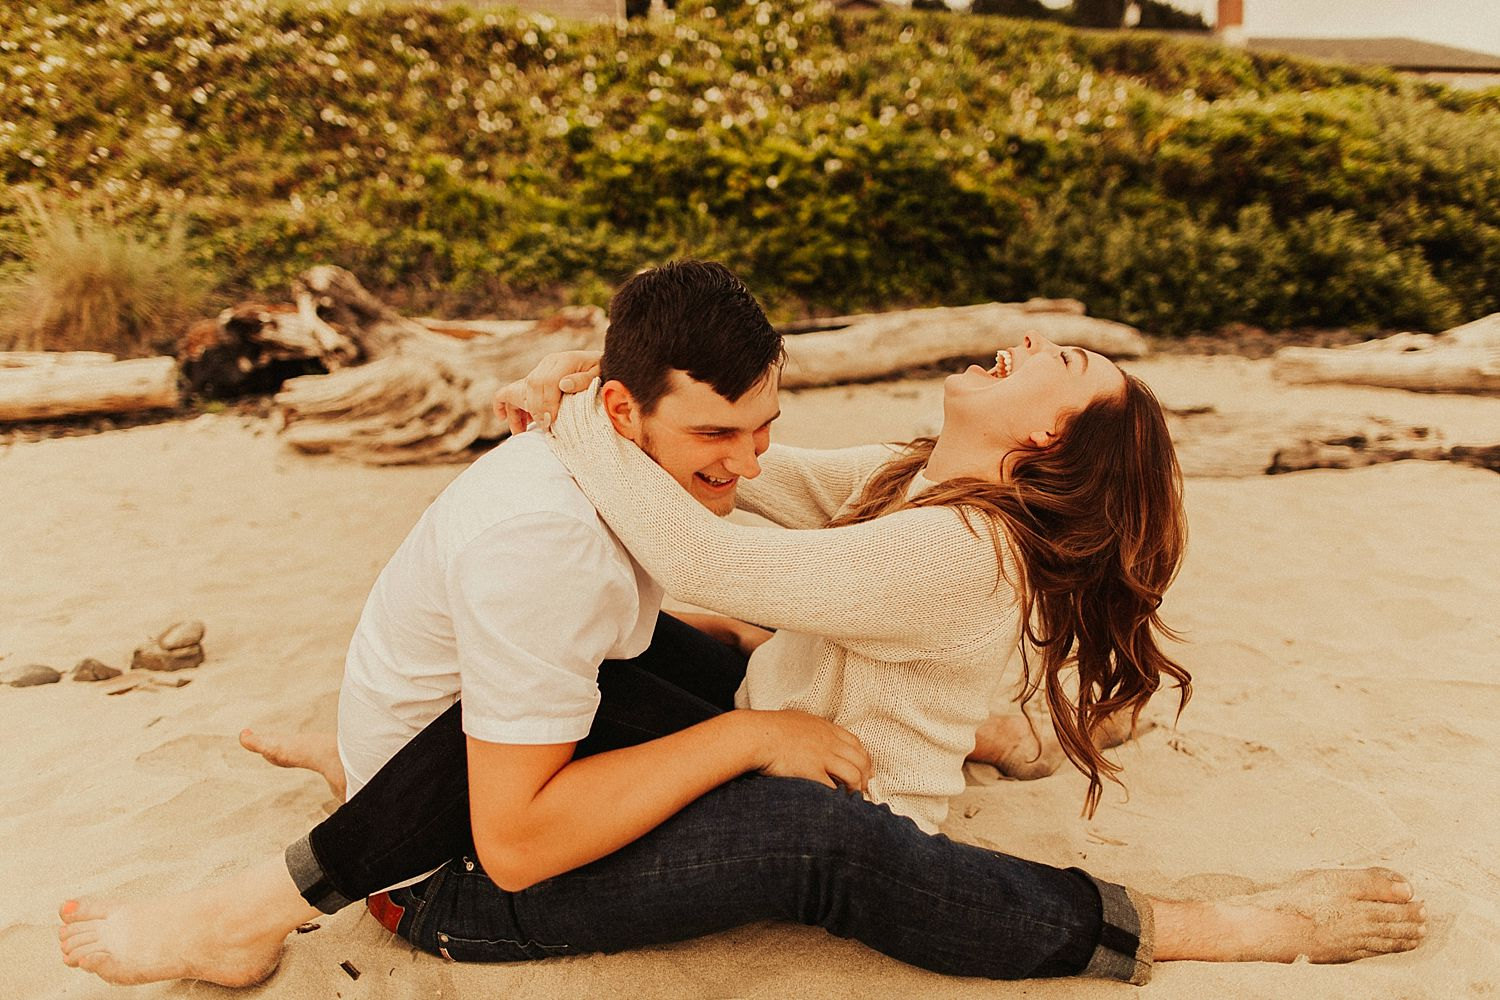 cannon-beach-couples-session_3682.jpg